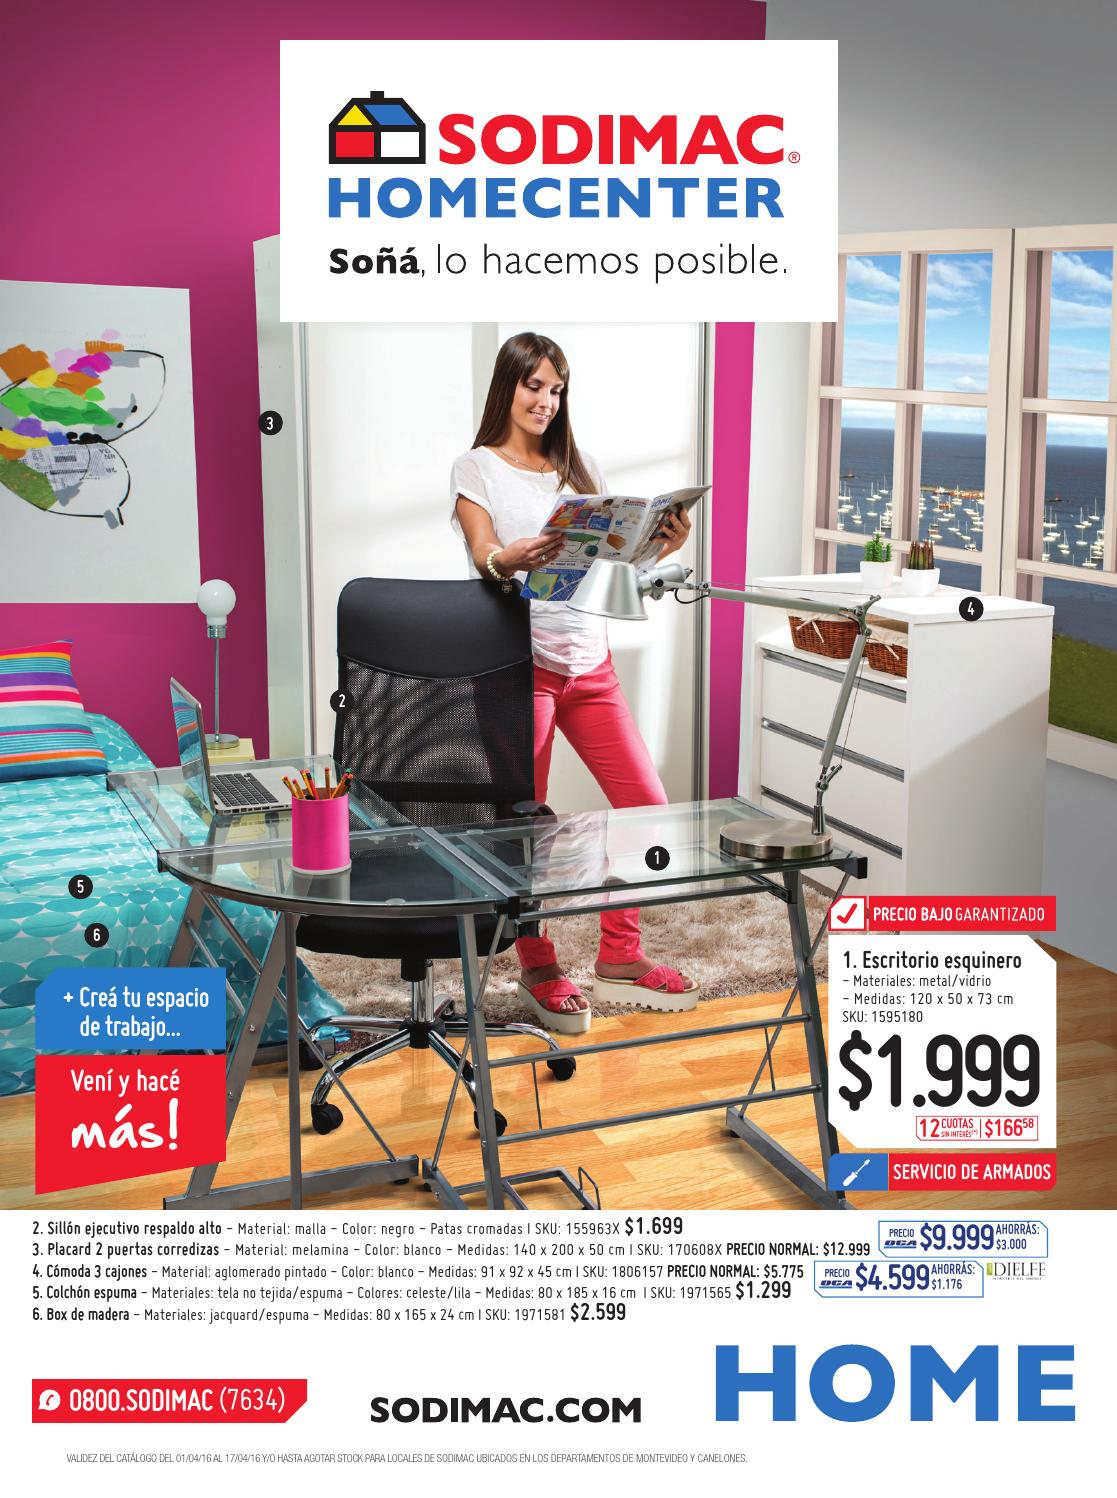 Sodimac homecenter cat logo abril 2016 uy by sodimac issuu for Escritorios homecenter